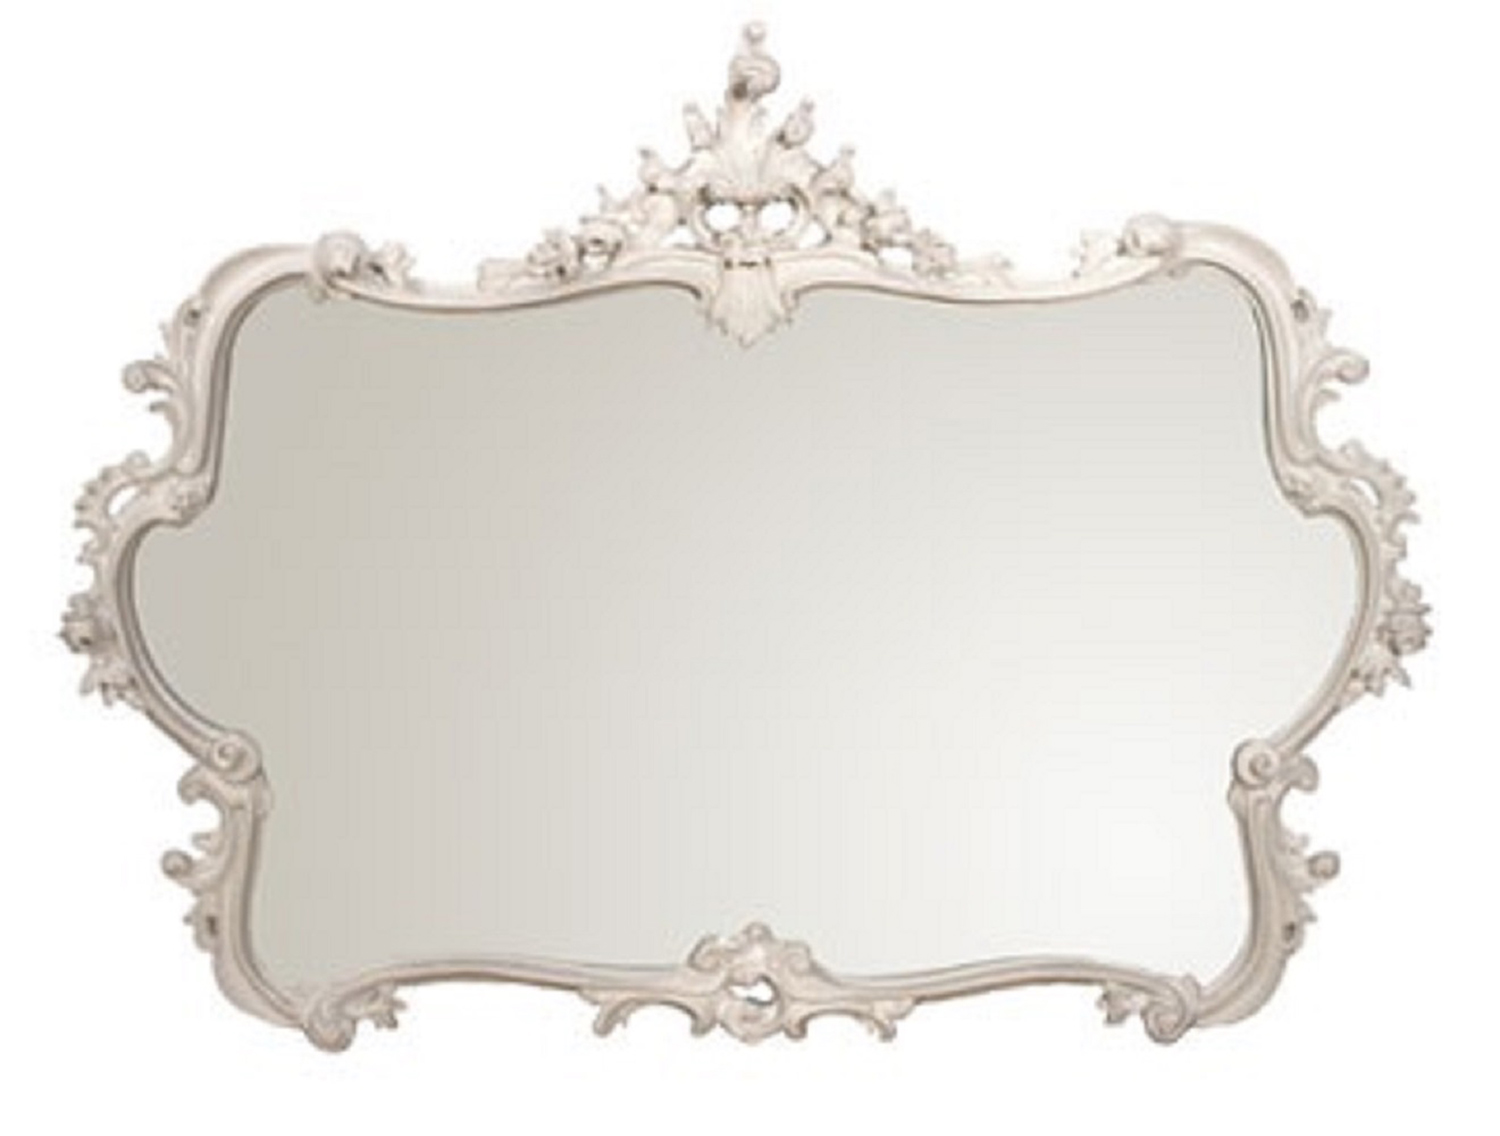 Miss Lala's White Looking Glass - cutout French wall mirror.jpg